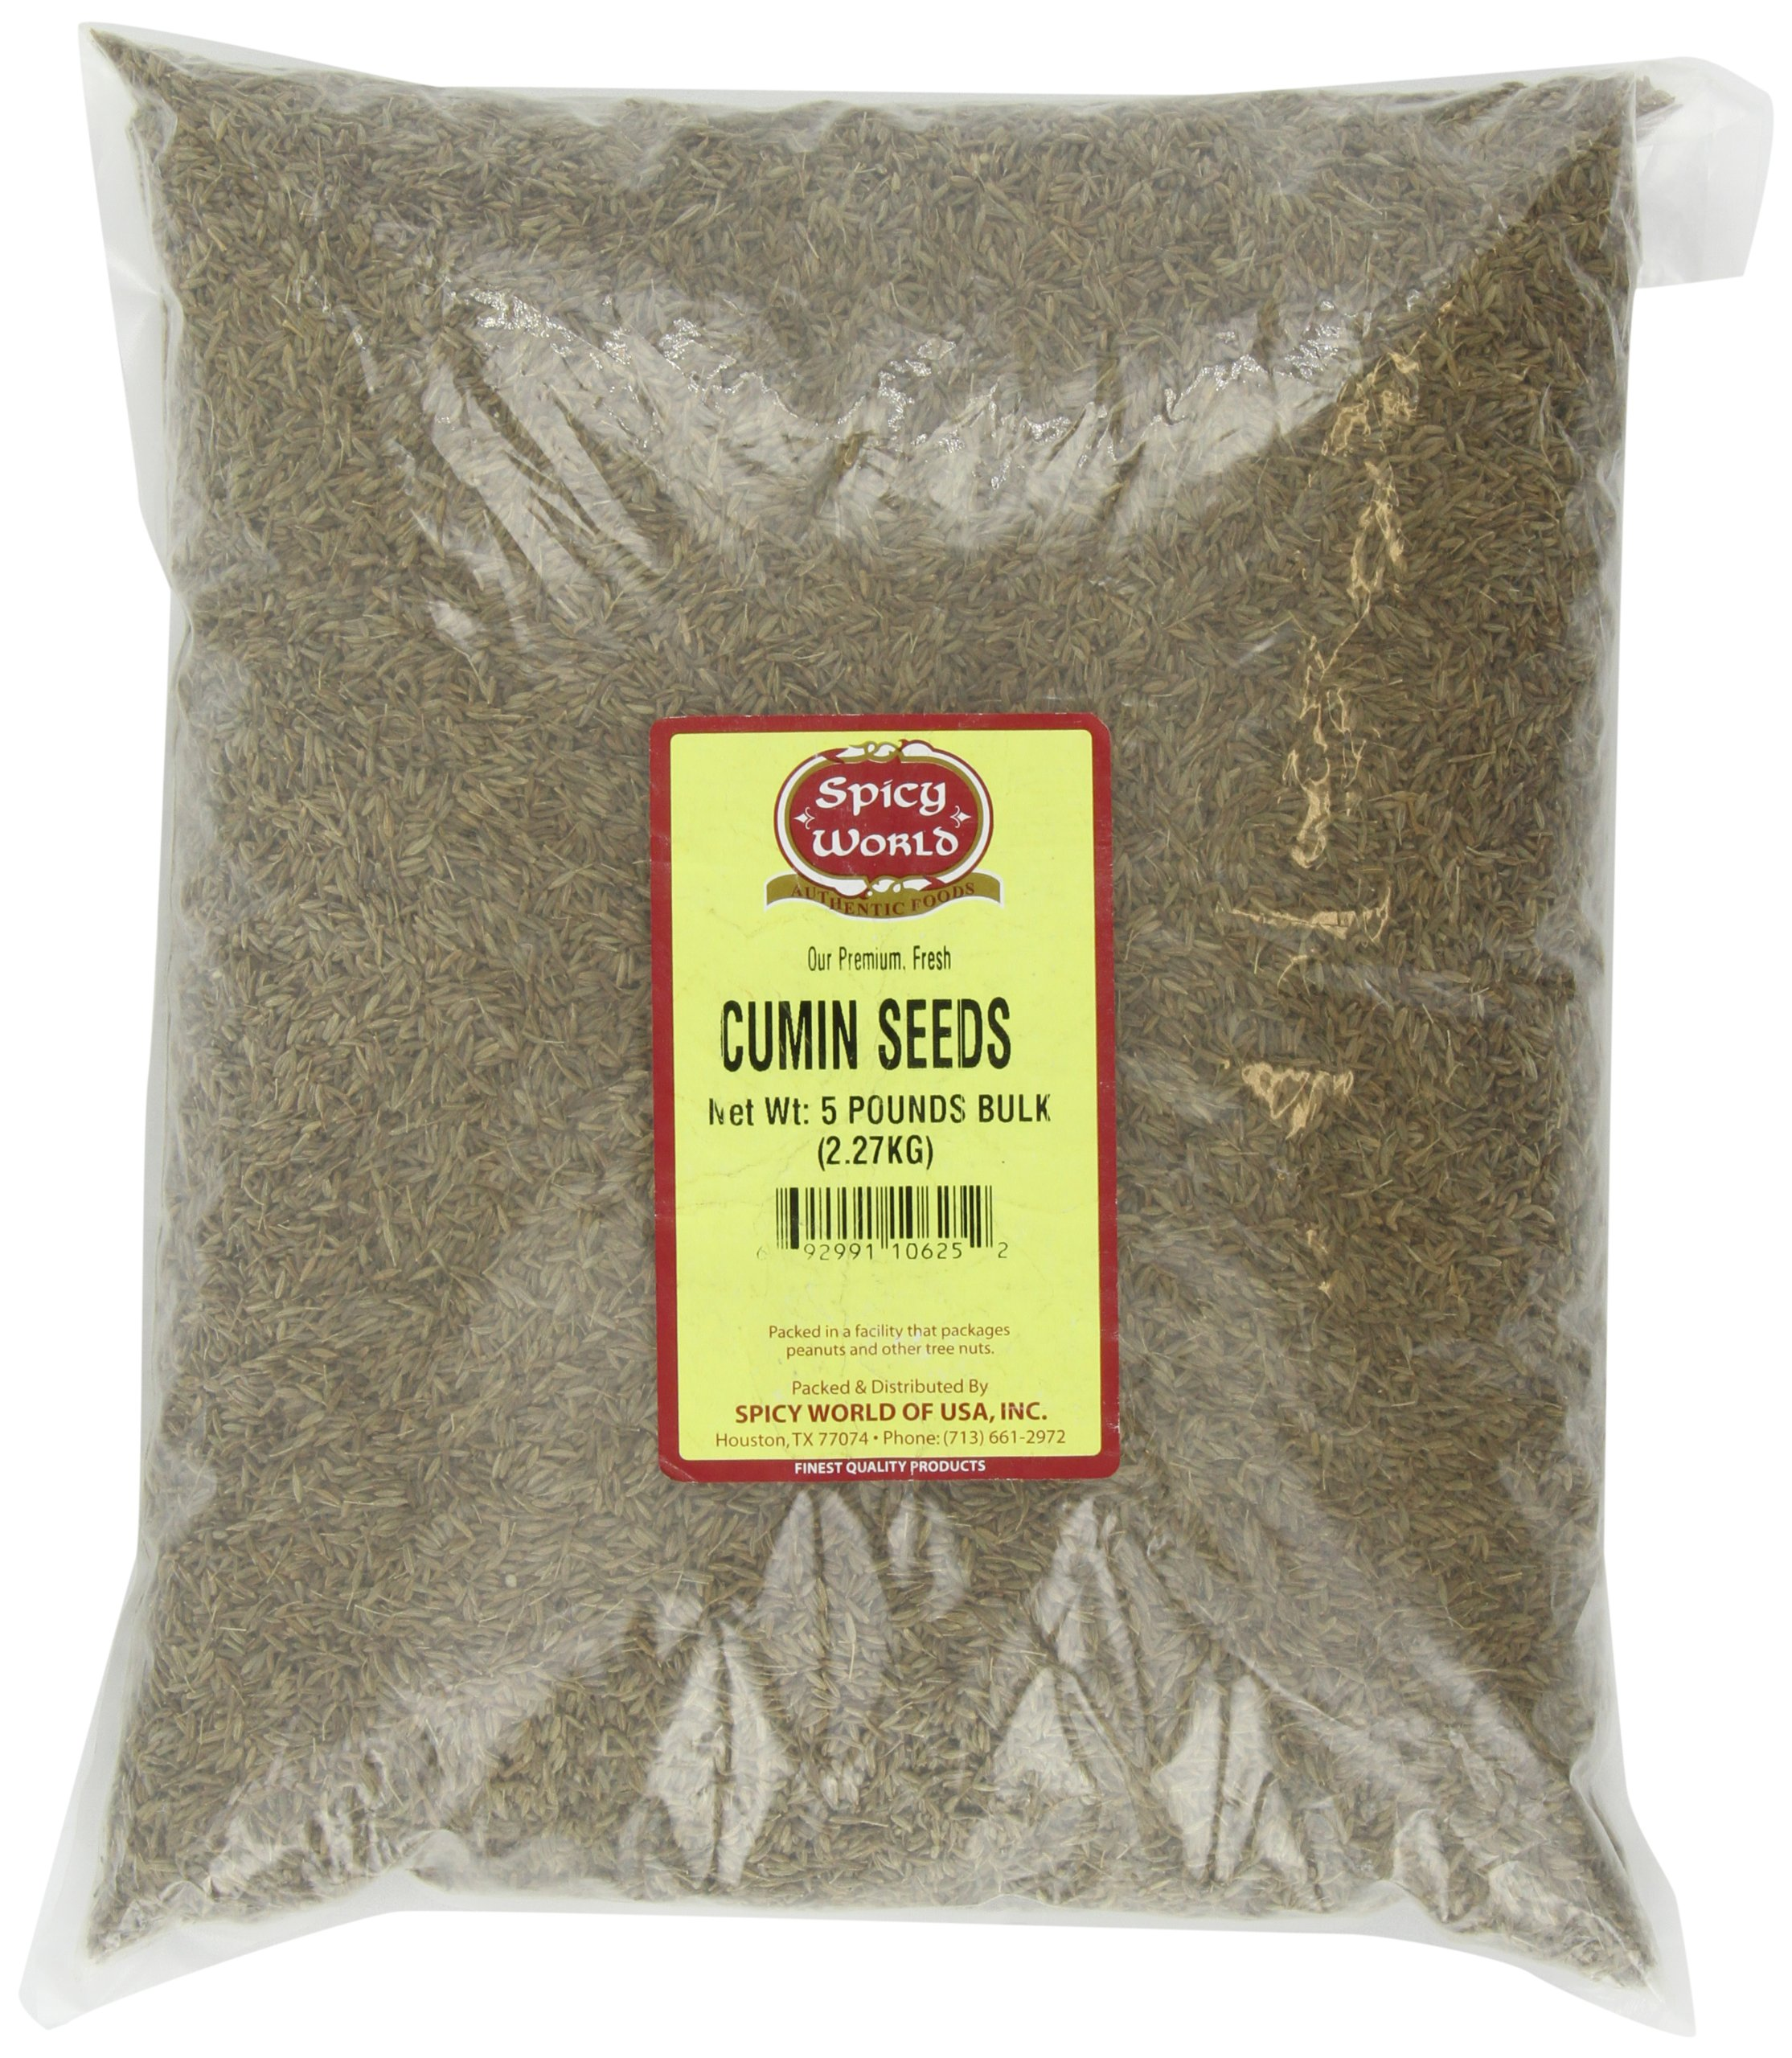 Spicy World Cumin Seeds Bulk, 5-Pounds